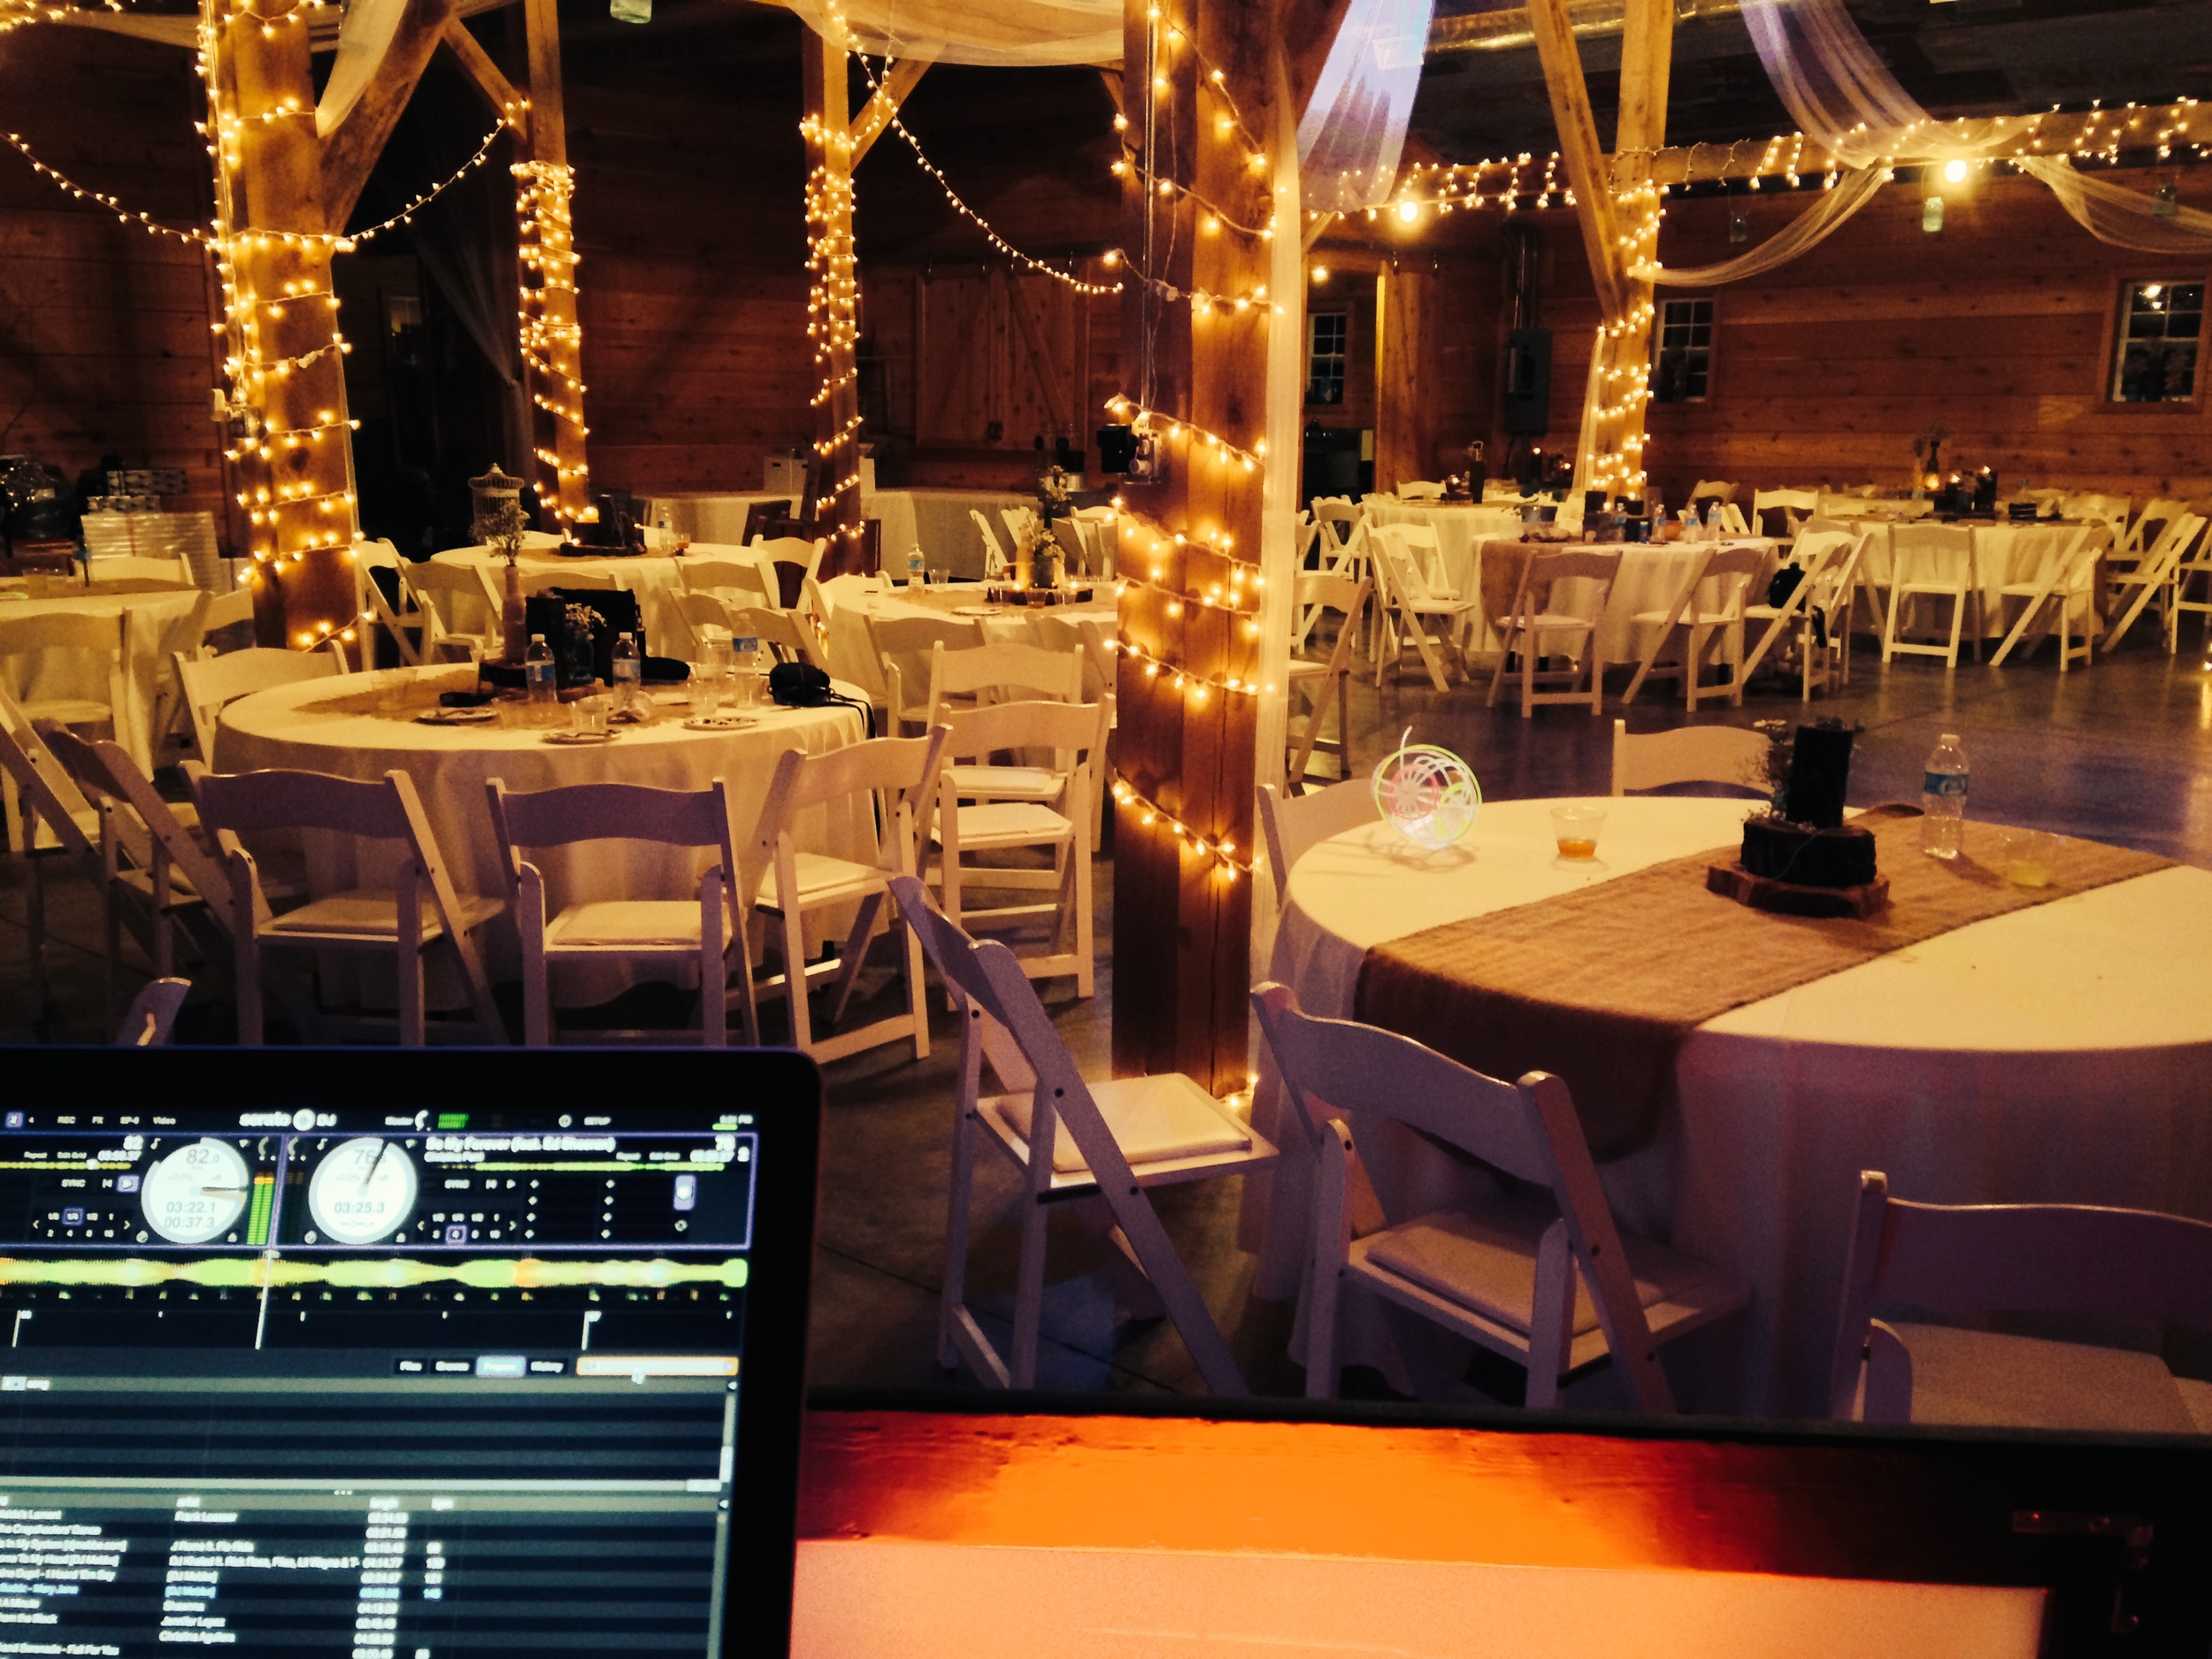 DJ Services at a wedding at the Barn in Pleasant Hope MO!